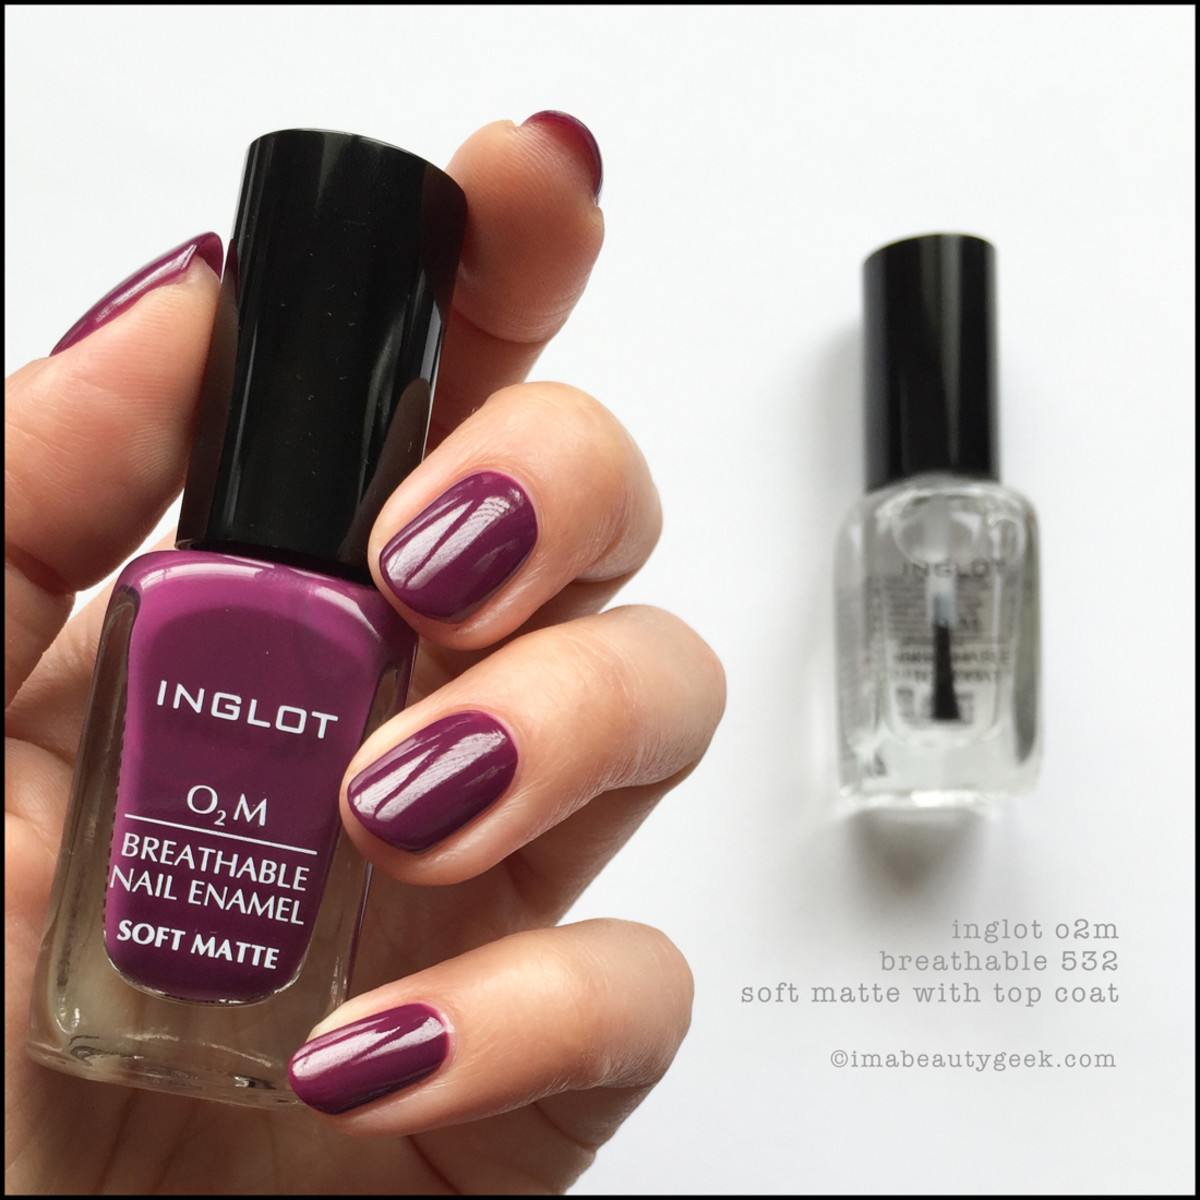 INGLOT O2M BREATHABLE NAIL ENAMEL SWATCHES REVIEW - Beautygeeks